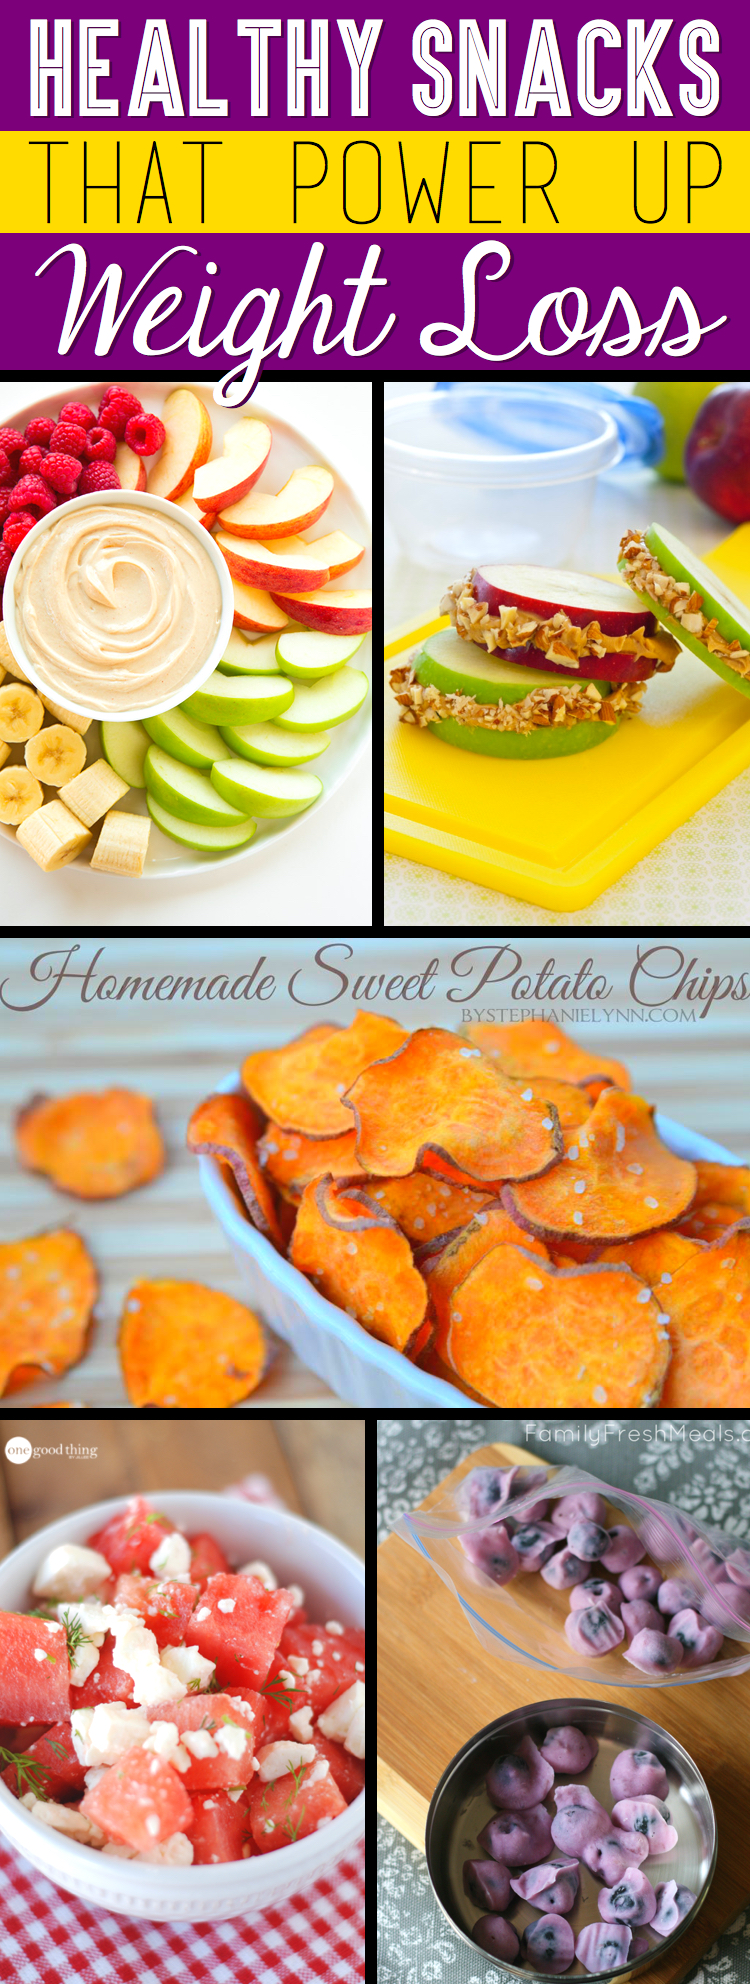 Healthy snack recipes to help with weight loss